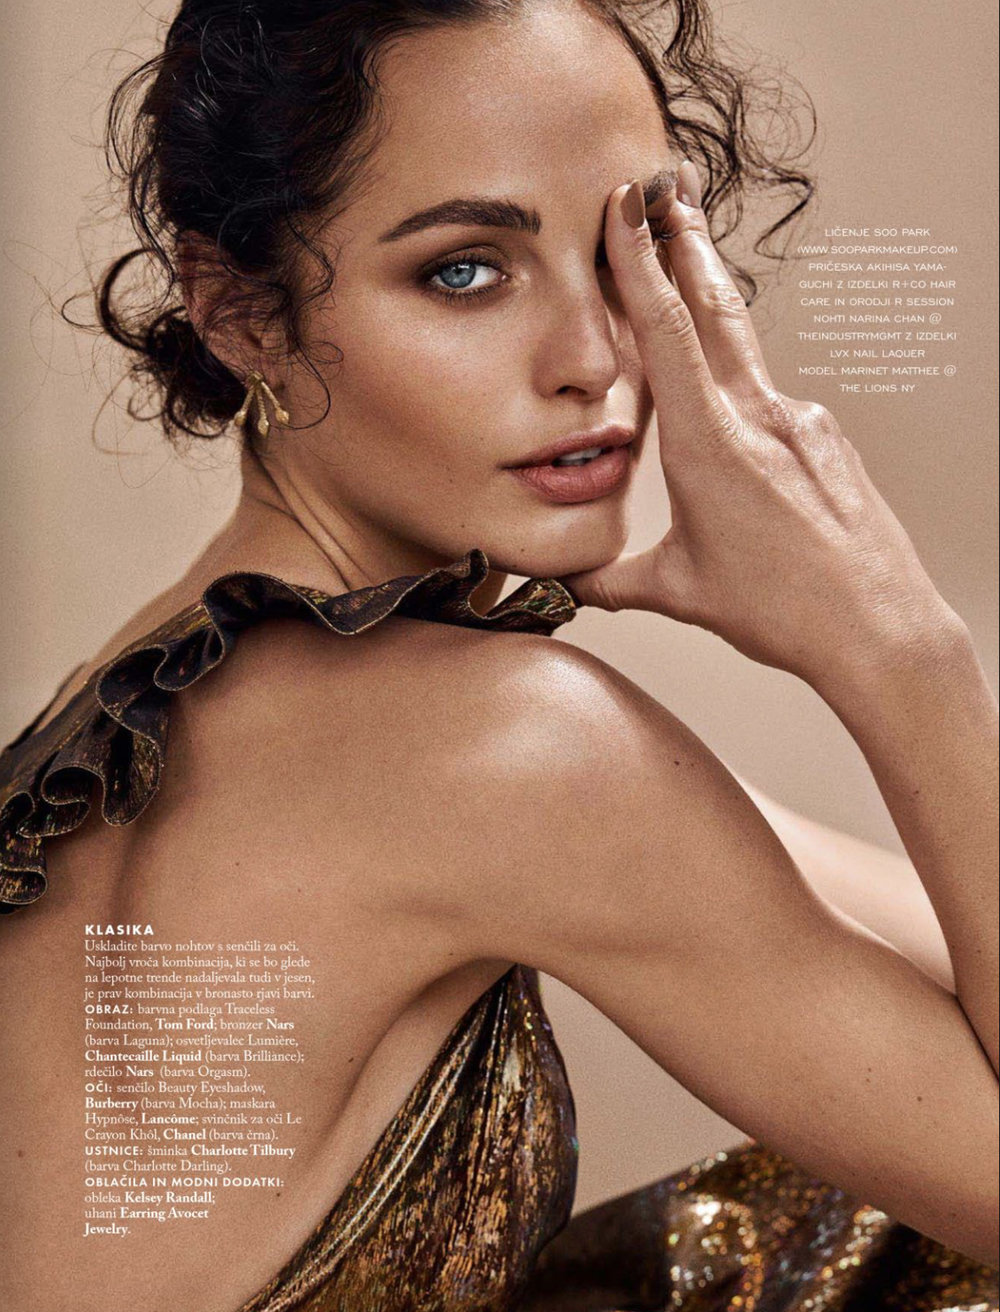 elle slovenia july cover story beauty issue special featuring kelsey randall gold holographic ruffle shoulder angel gown